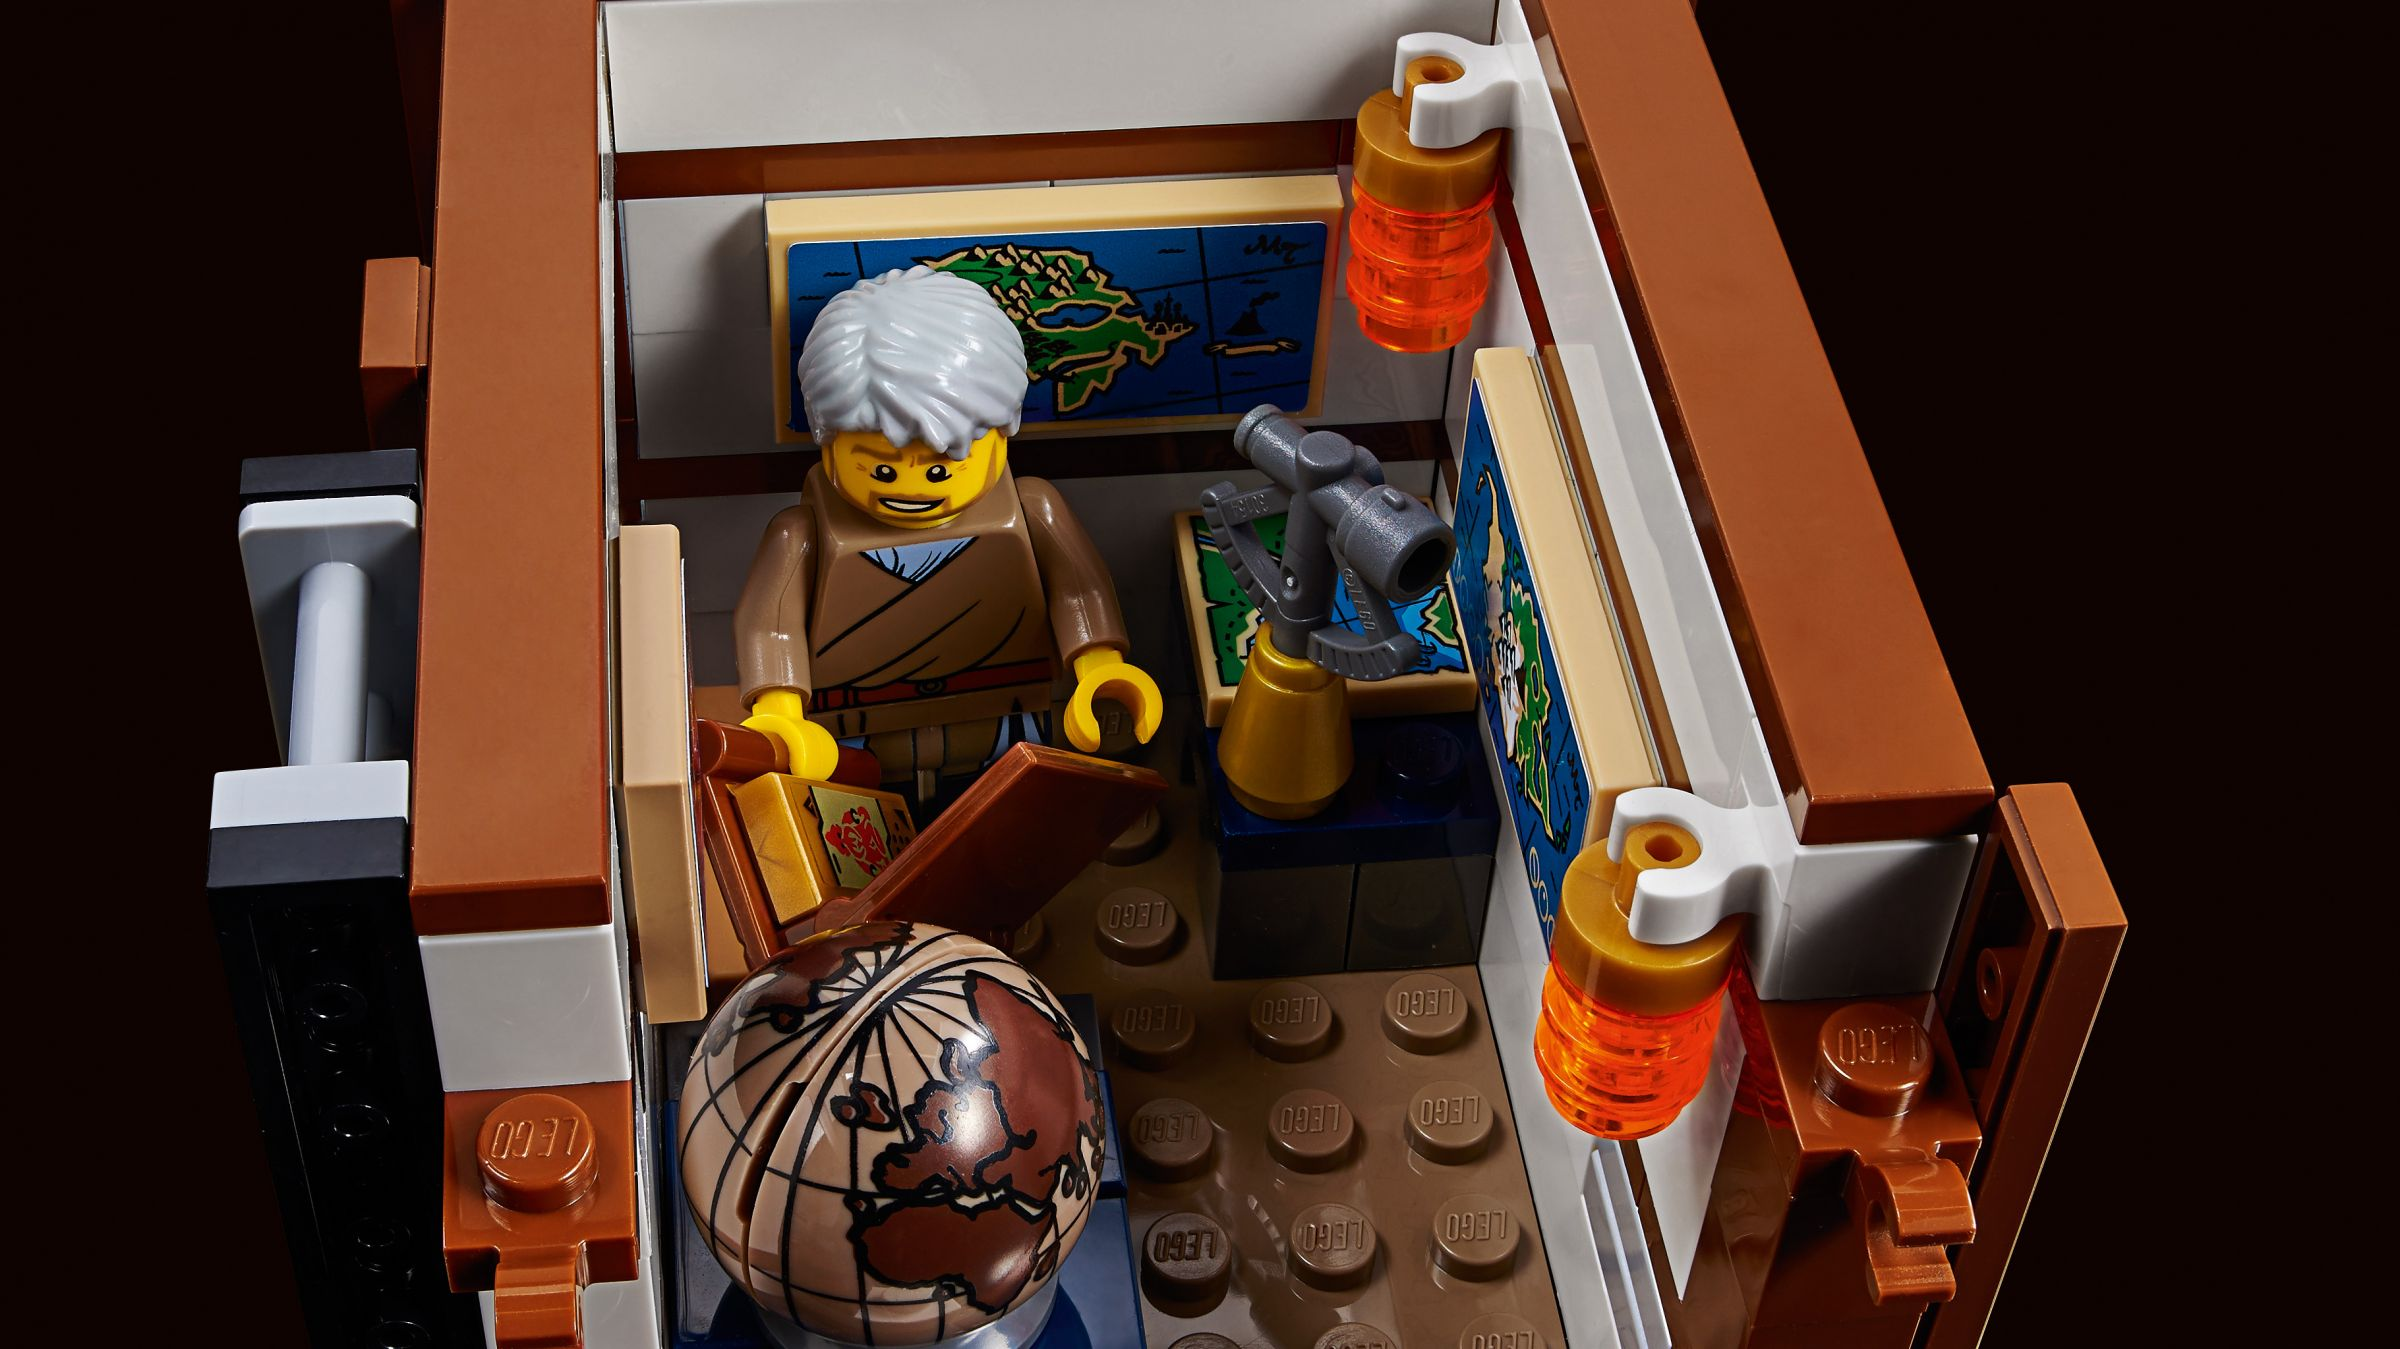 LEGO The LEGO Ninjago Movie 70657 Ninjago City Hafen LEGO_70657_Ninjago_City_Hafen_img09.jpg